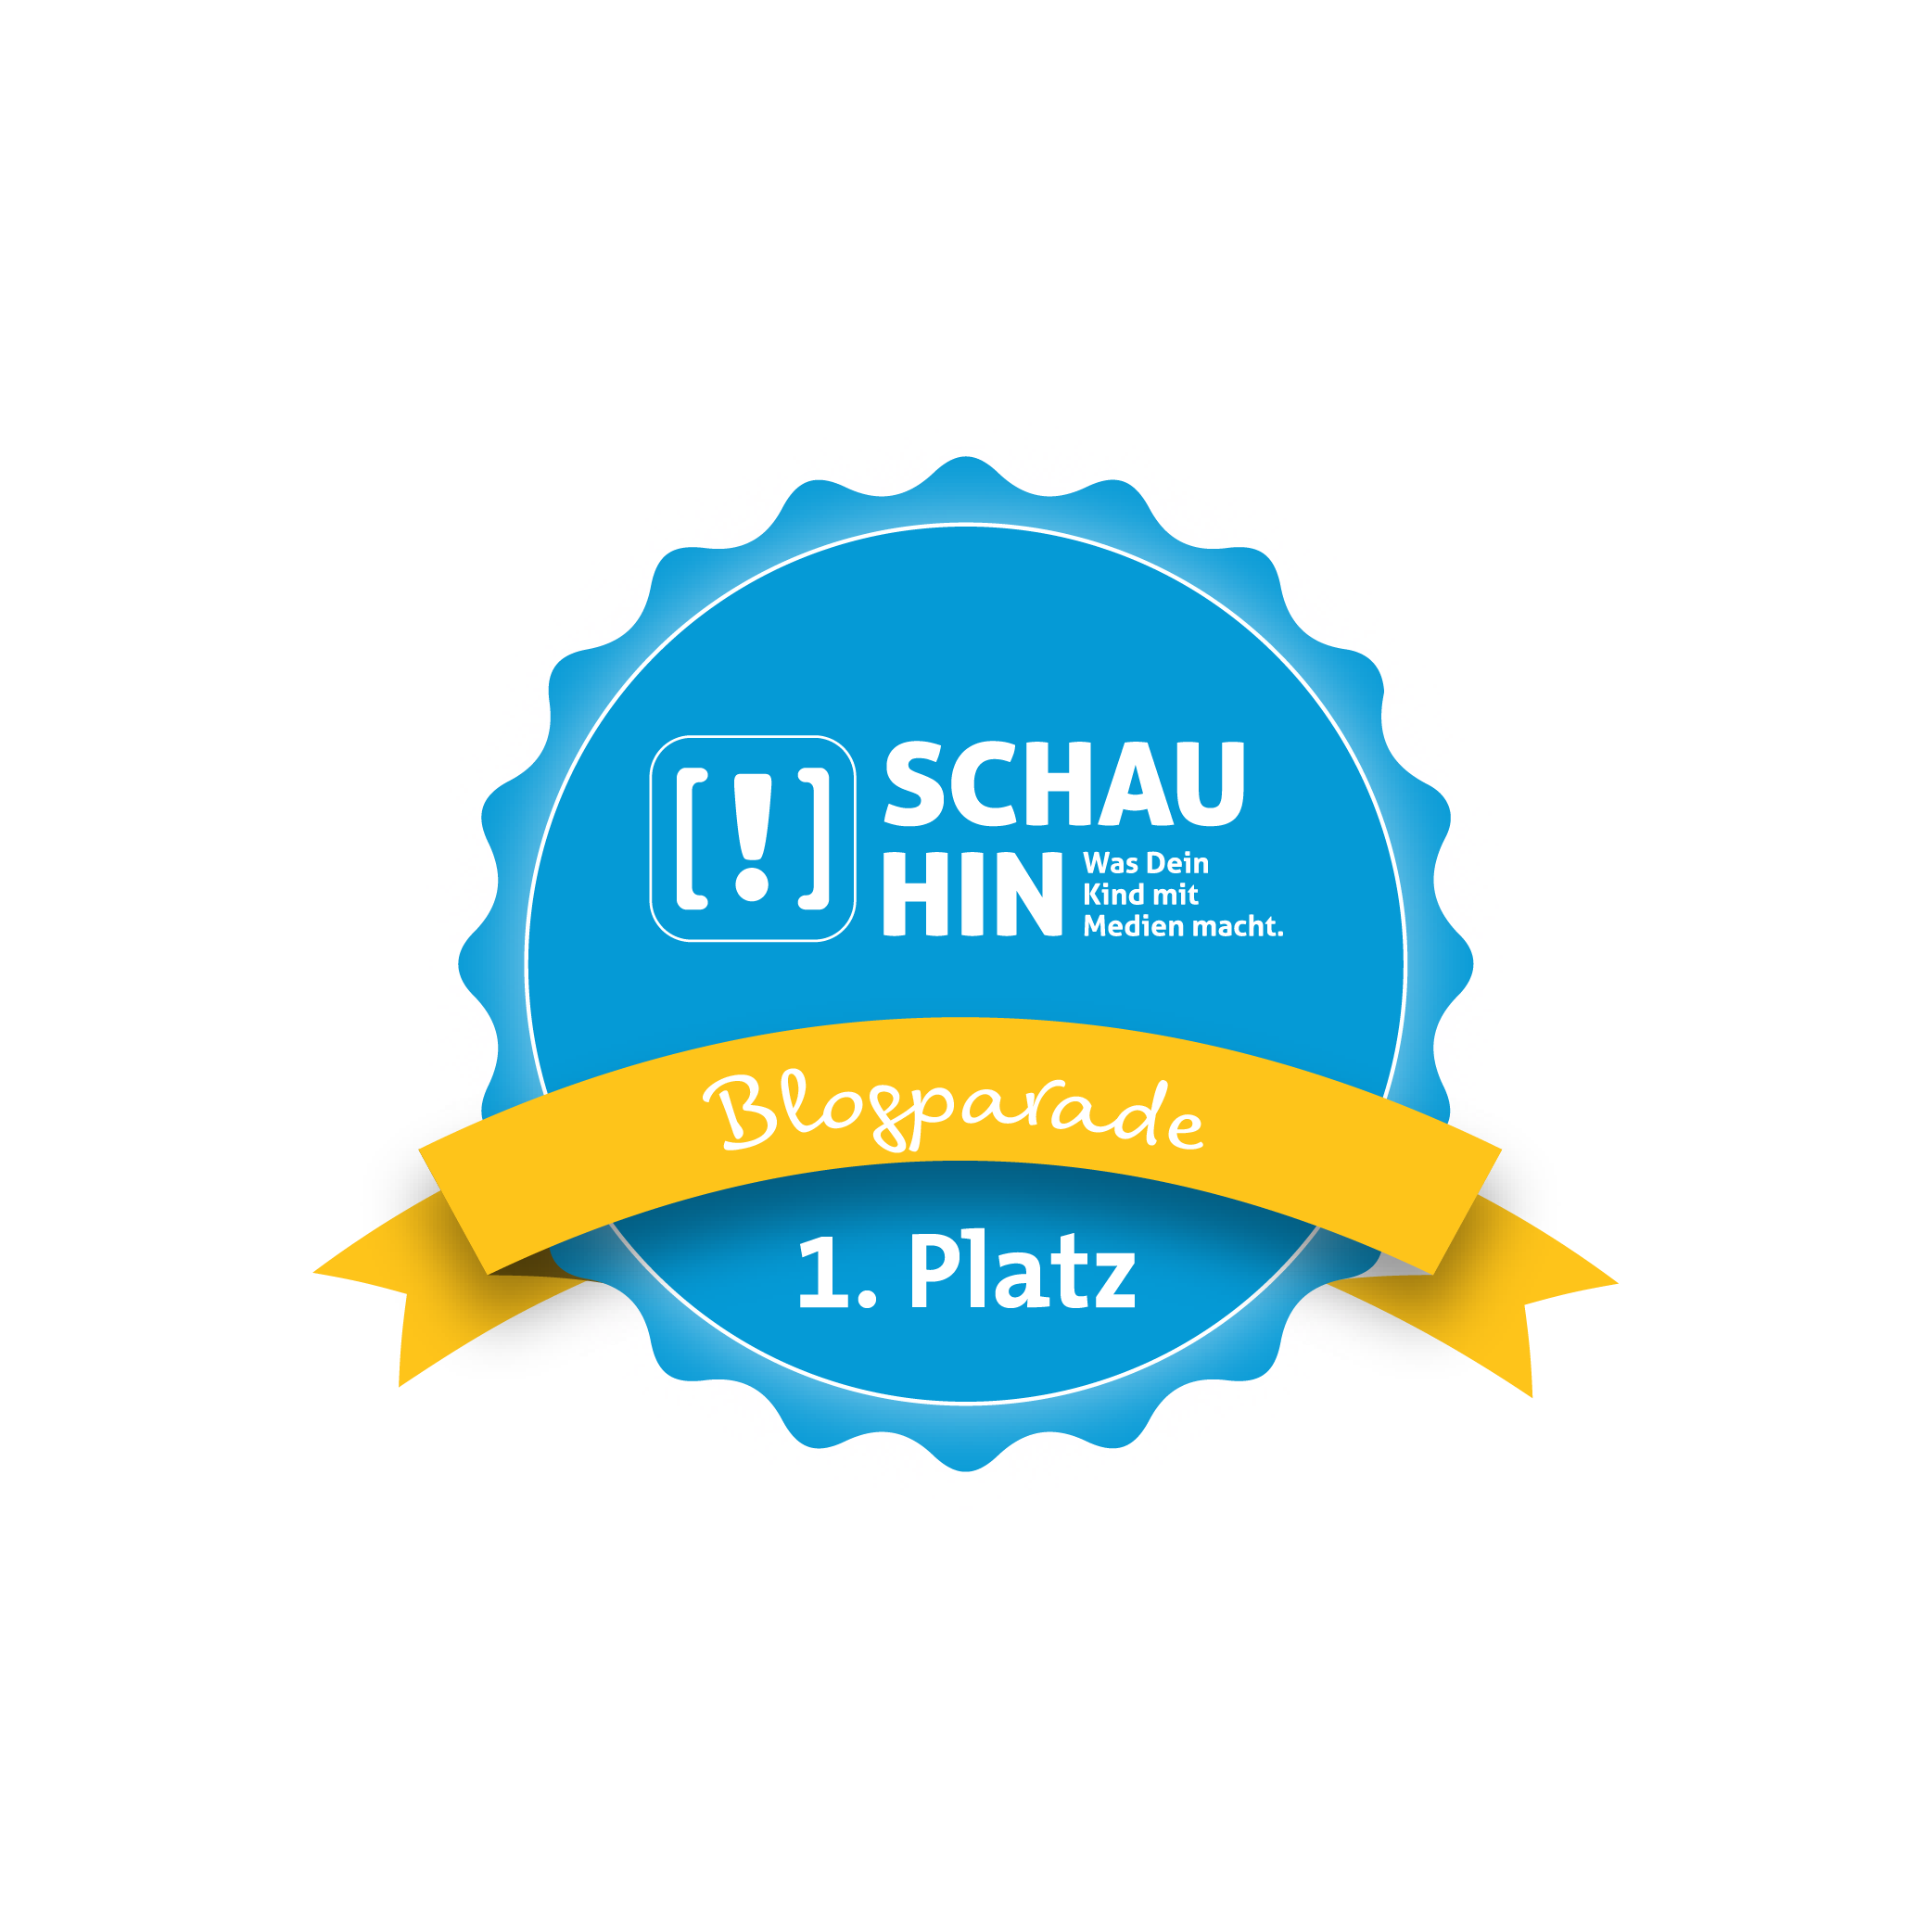 Platz 1 Schau Hin Blogparade